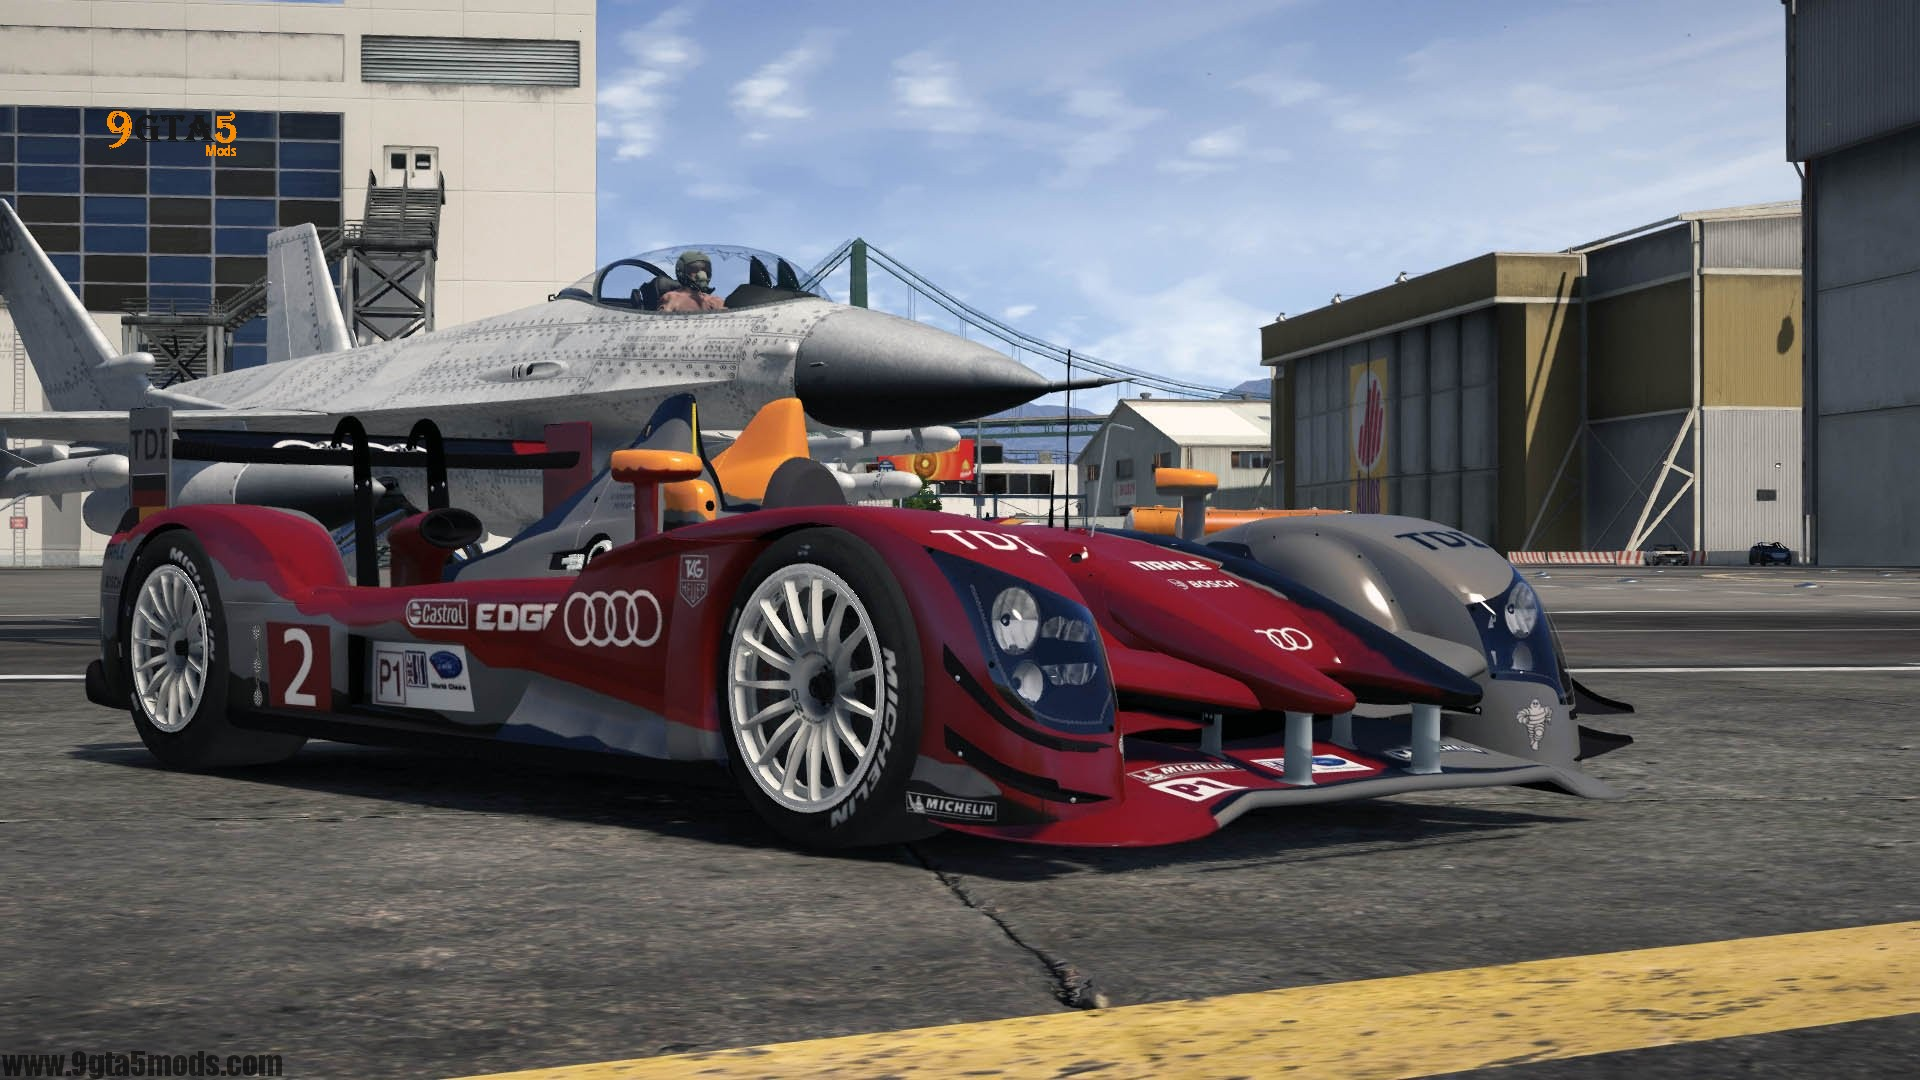 2011 Audi #2 Audi Sport Team Joest R15++ TDI | GTA 5 Vehicles 6